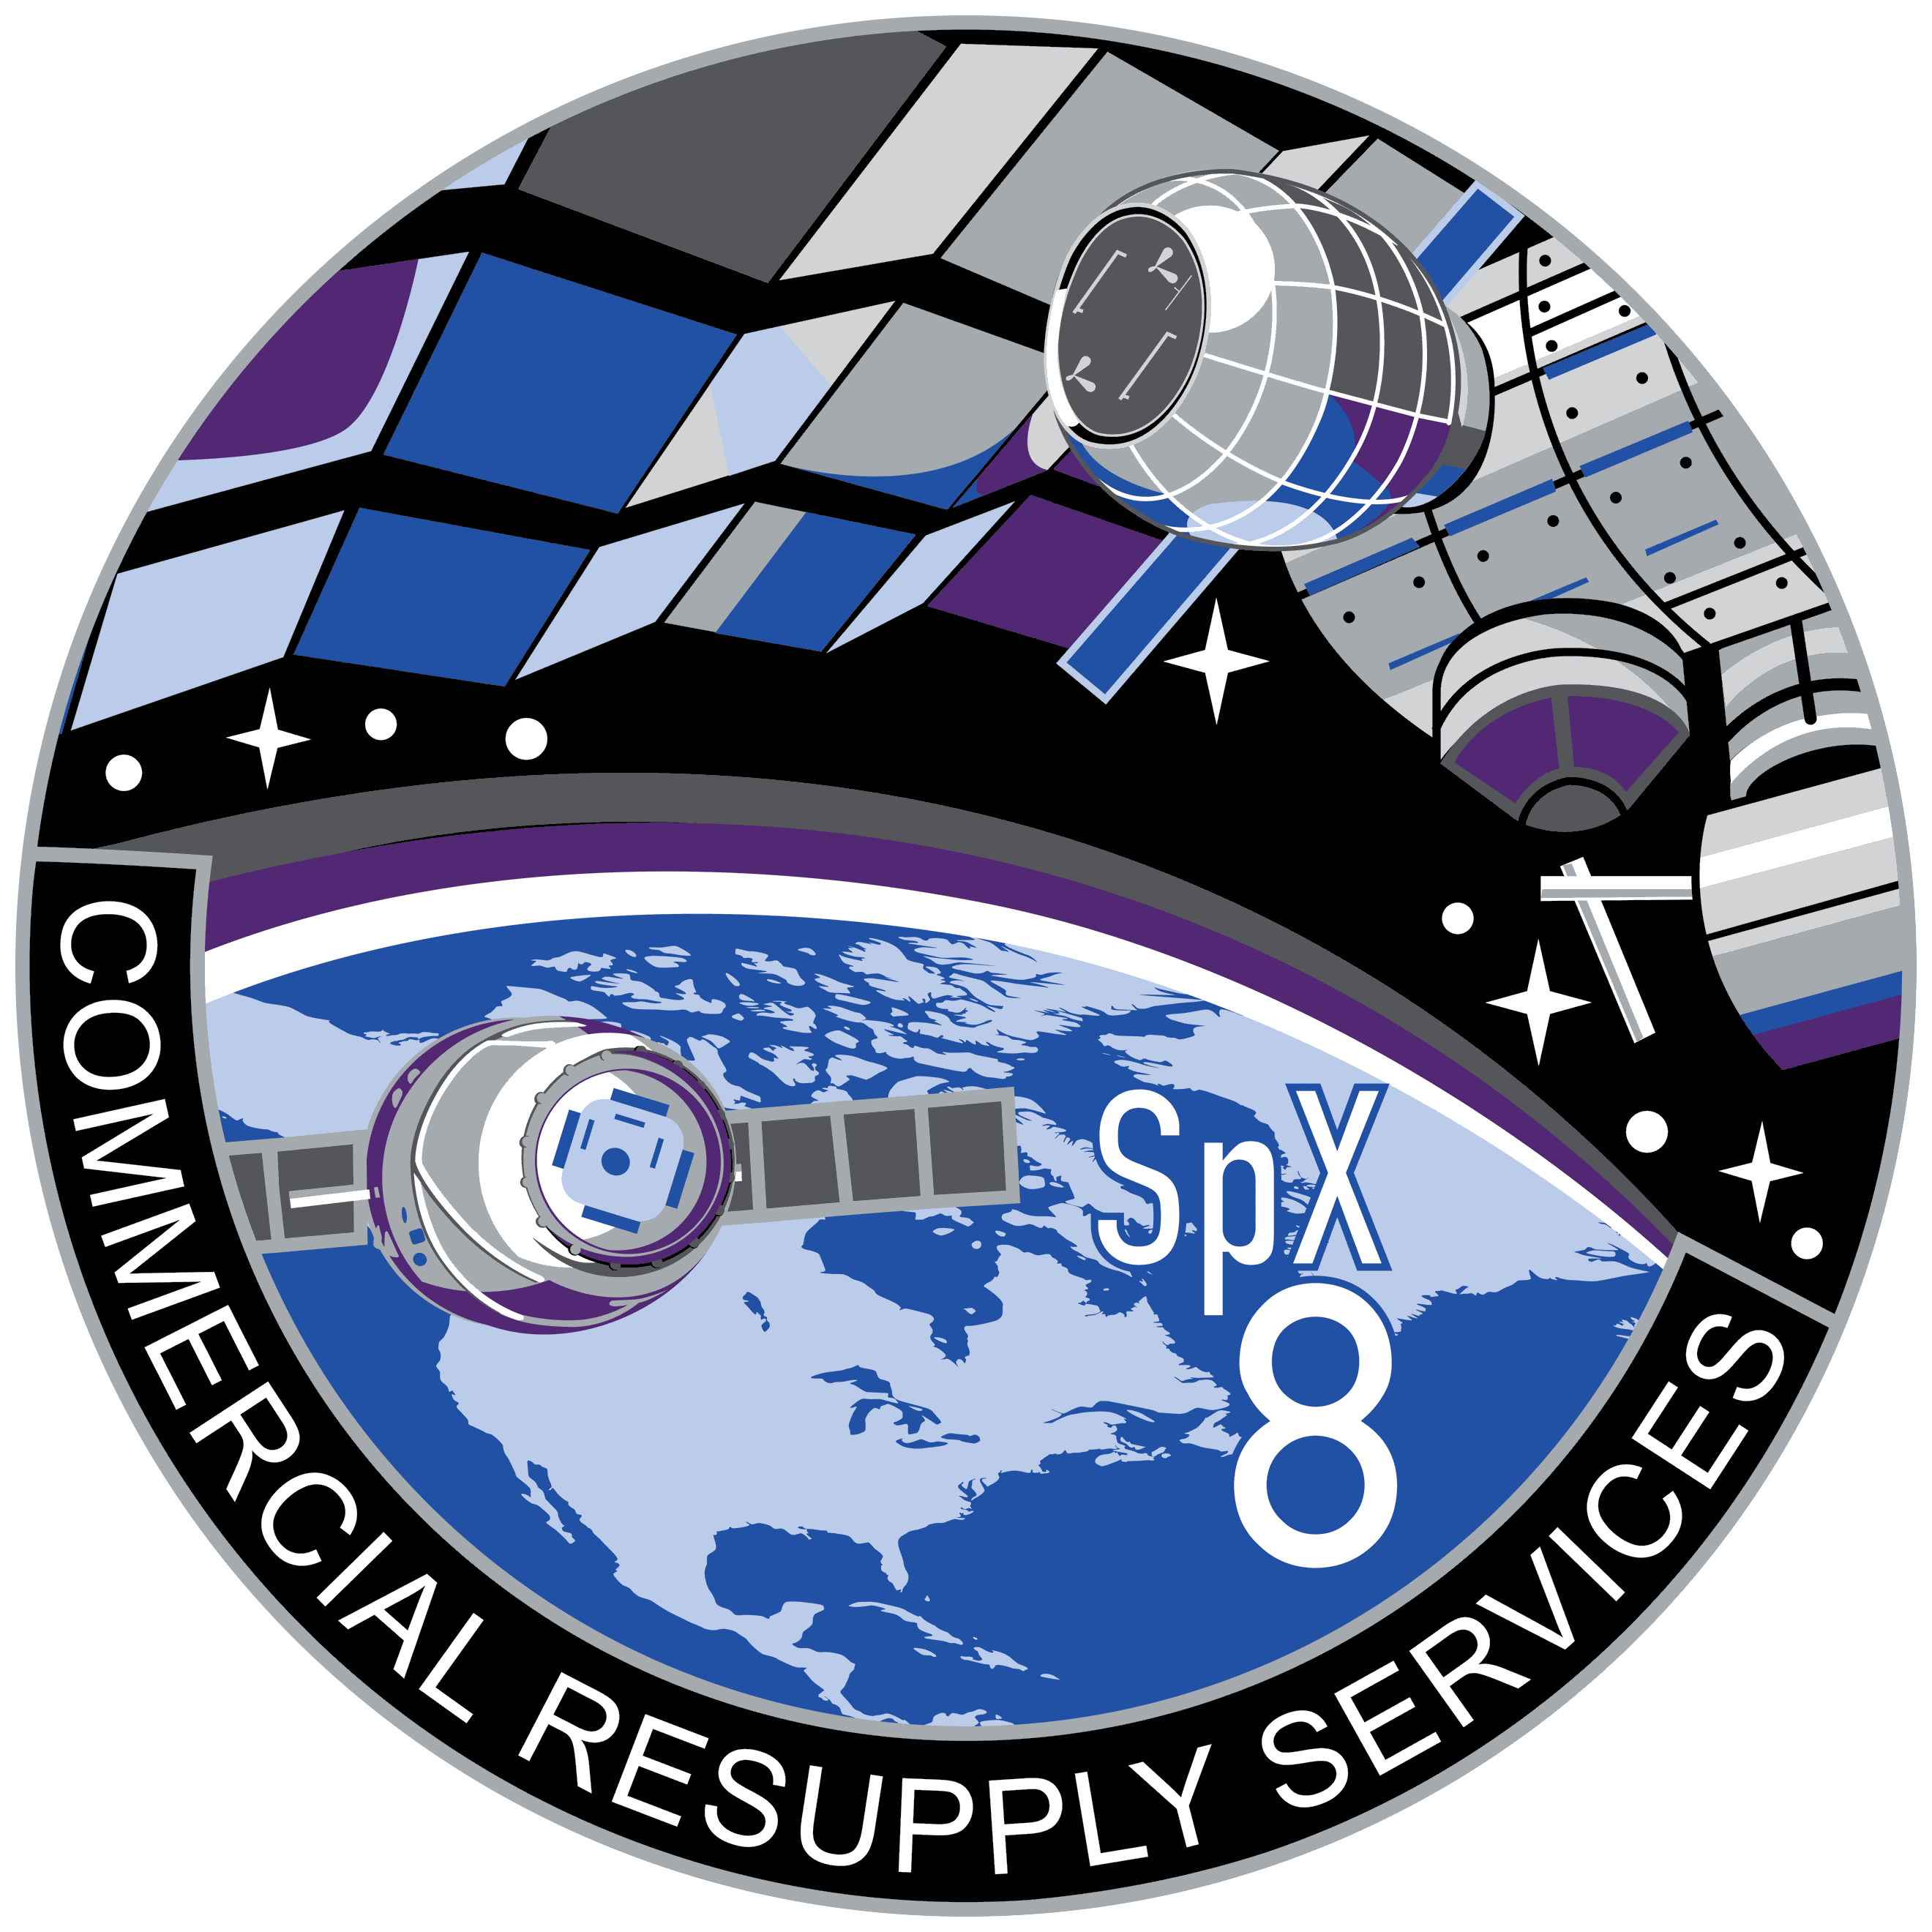 Lancement Falcon 9 / CRS-8 - 8 avril 2016 SpaceX_CRS-8_Patch